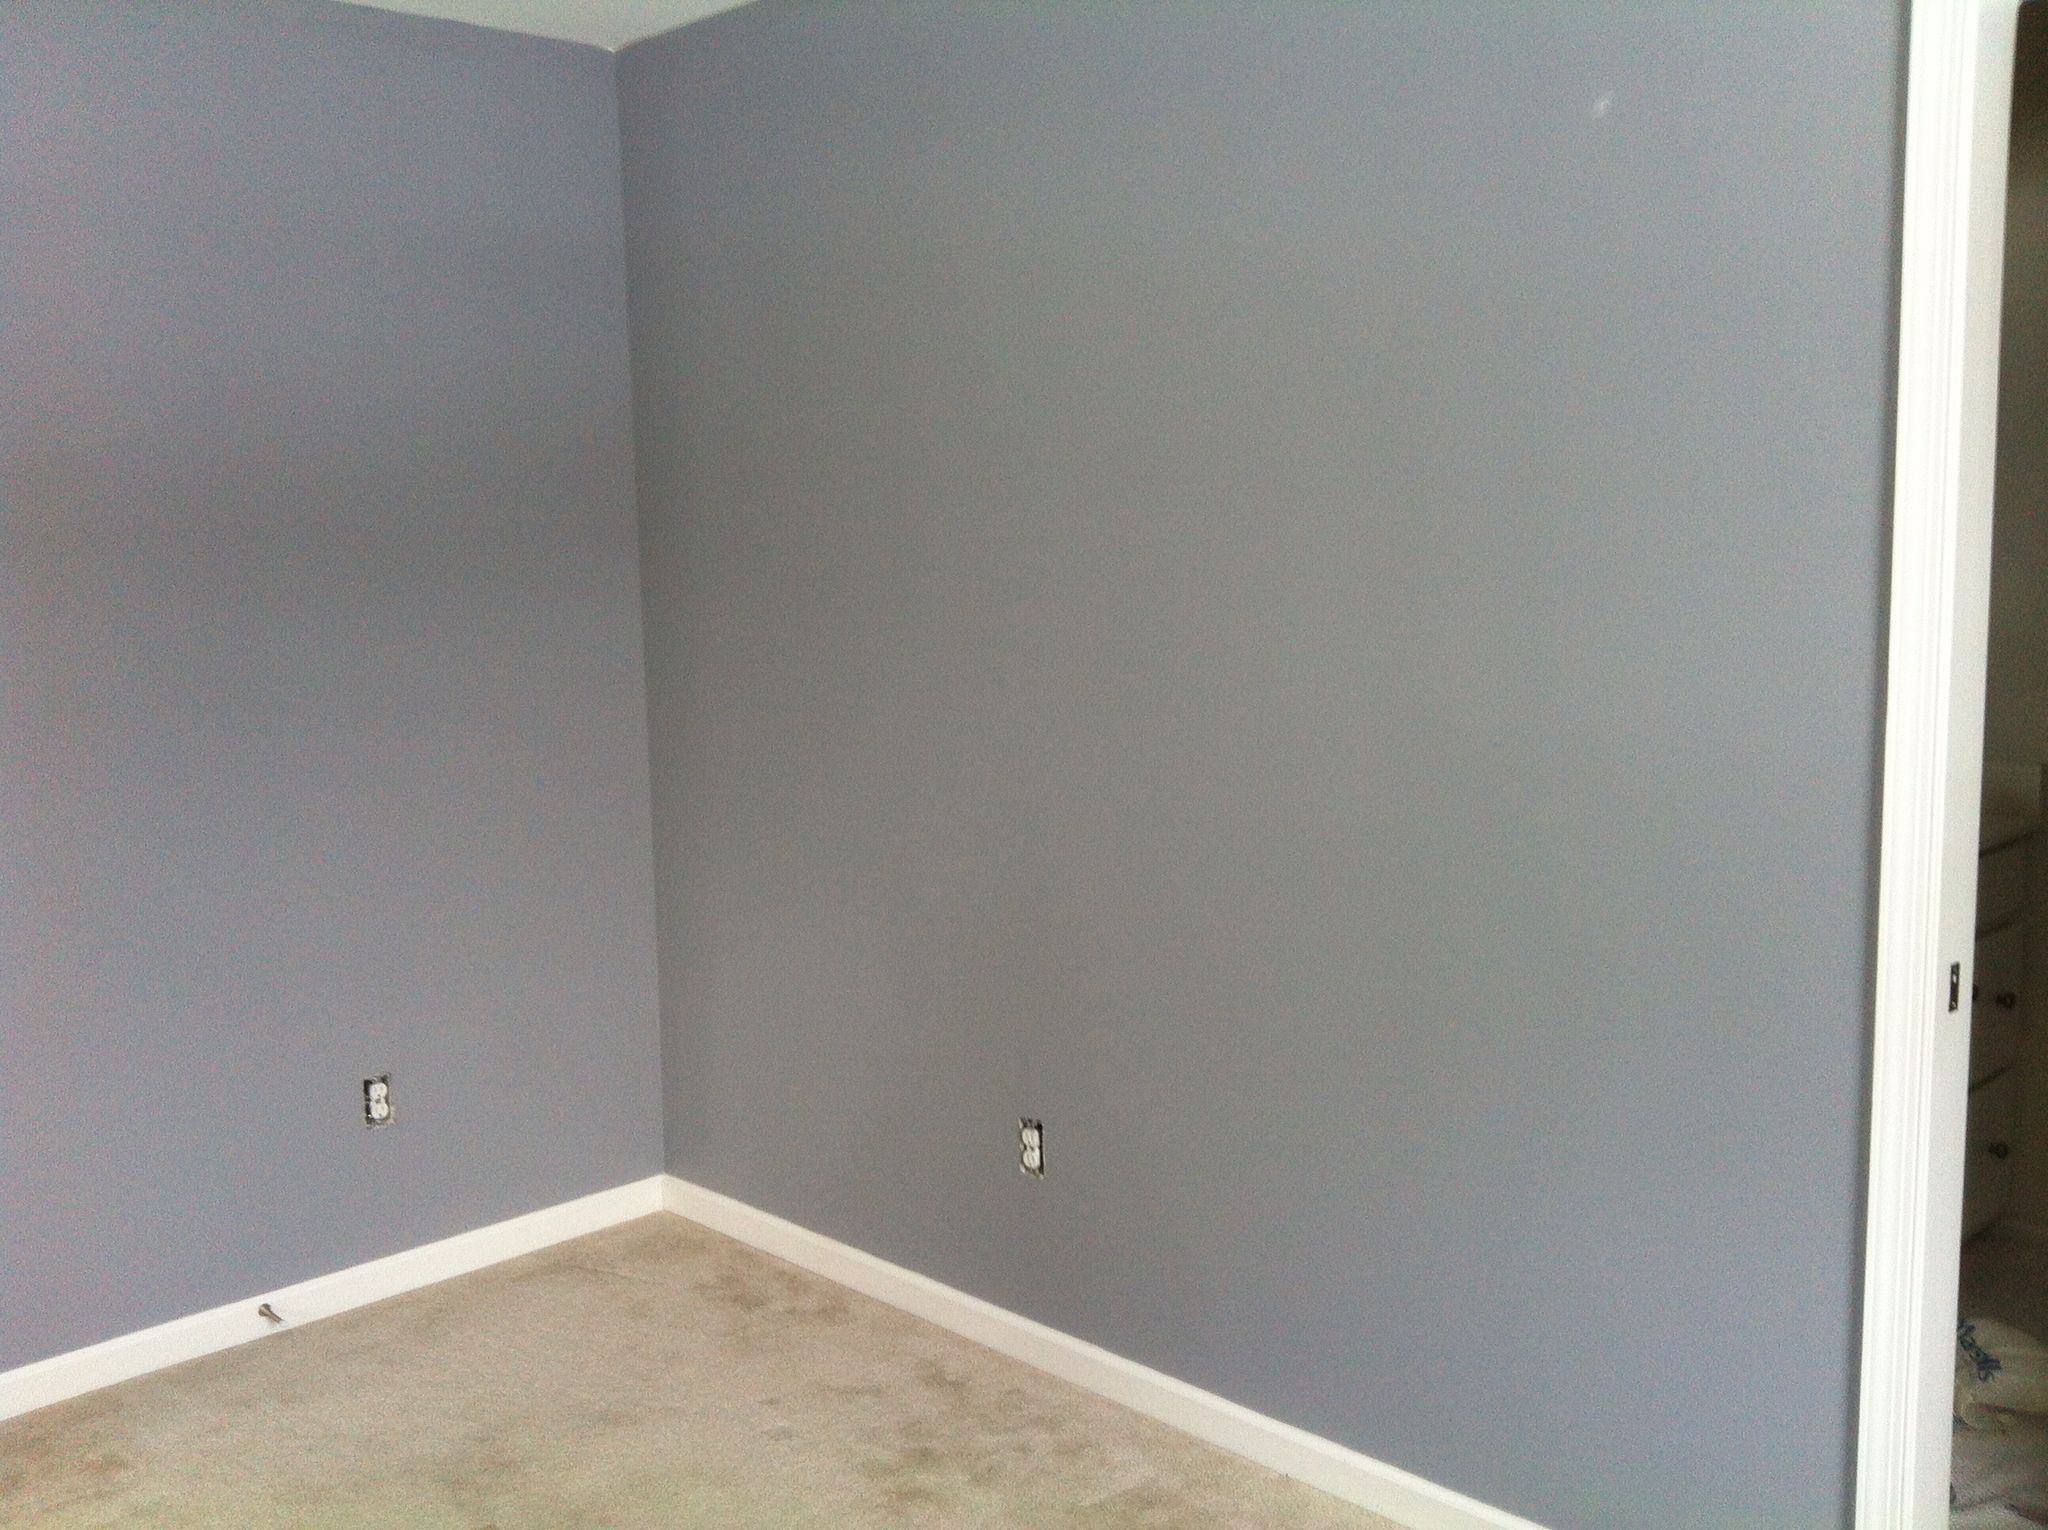 Sherwin Williams Morning Fog walls Shaw carpet in color pebble